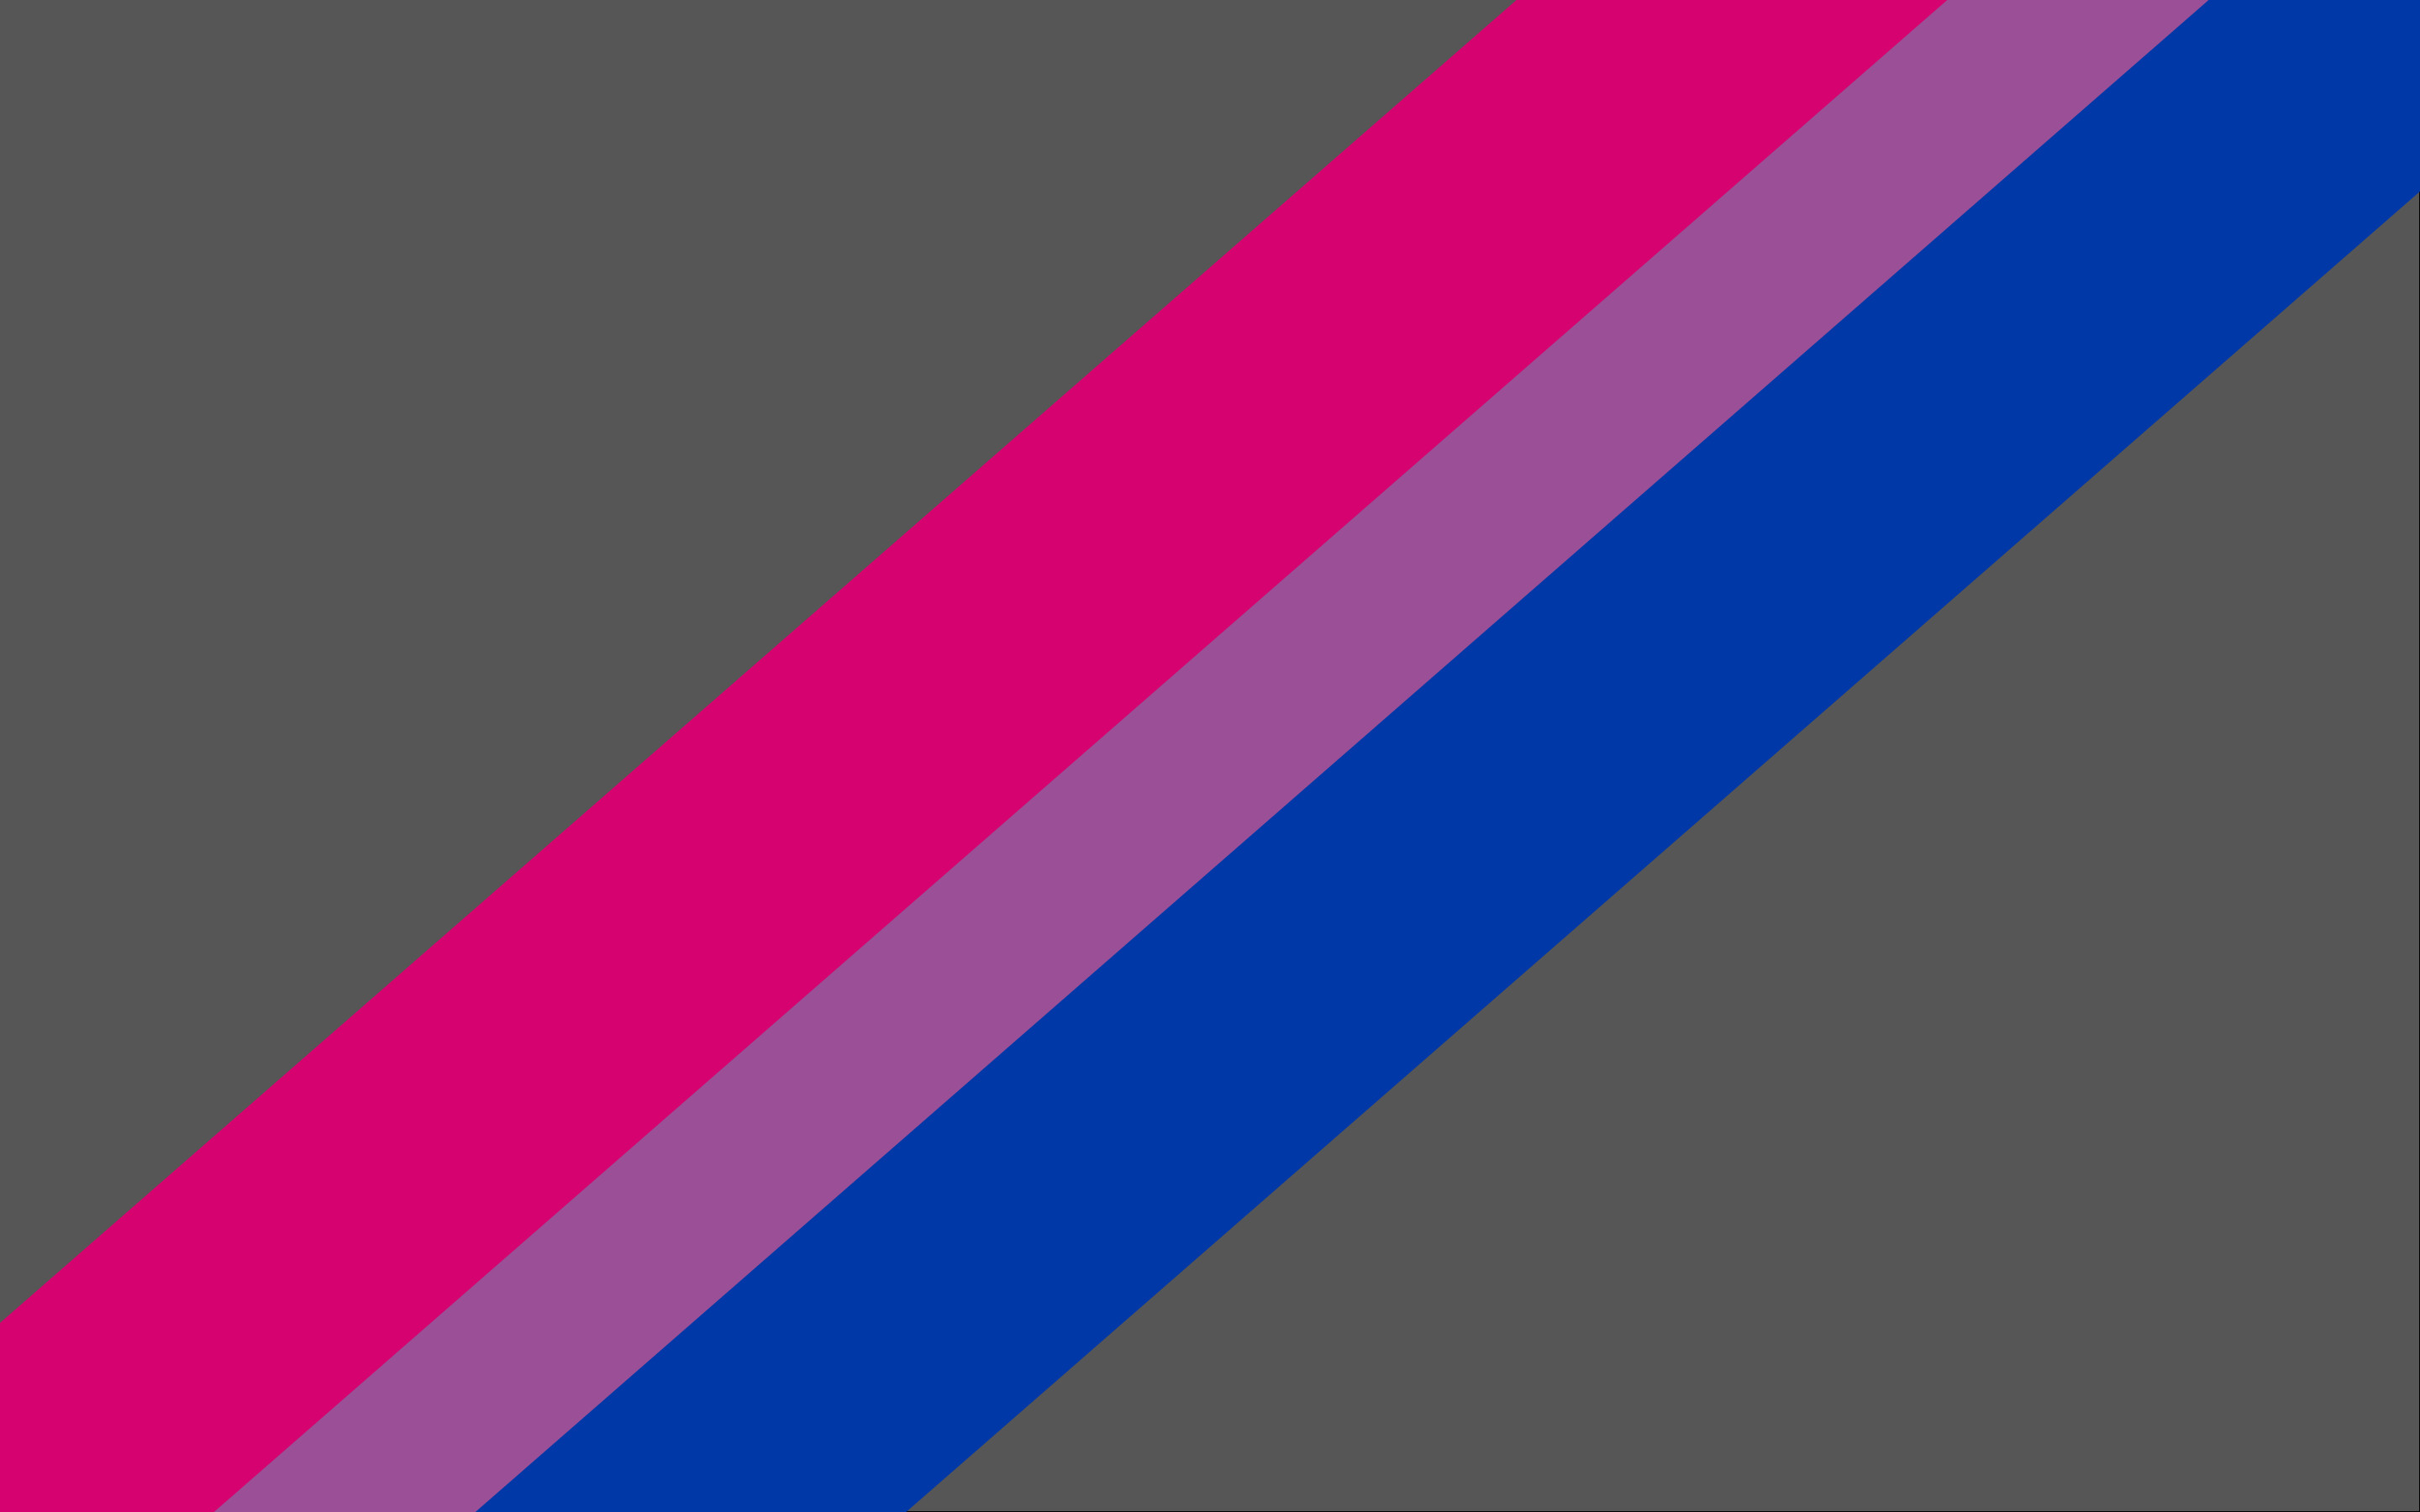 Bi wallpaper I made, thought you all might appreciate itPRIDE …